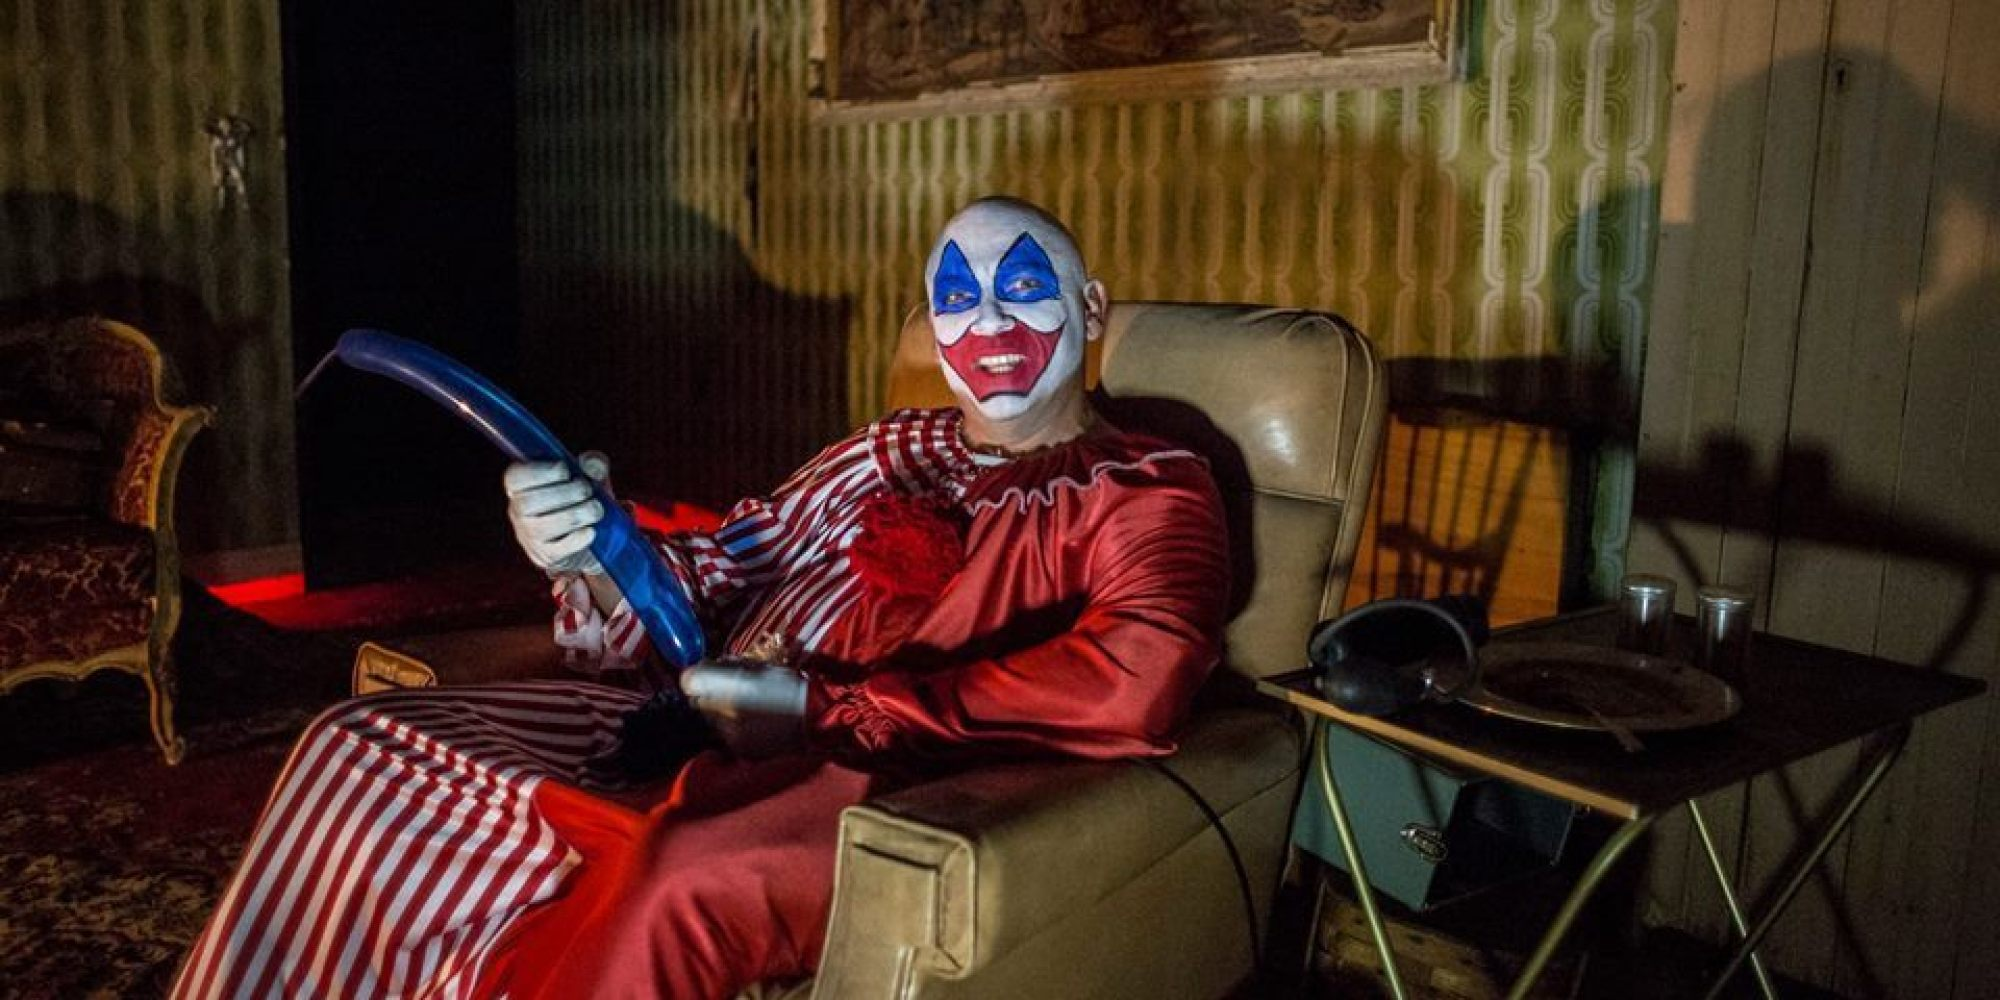 Haunted House With John Wayne Gacy Room Erected Near